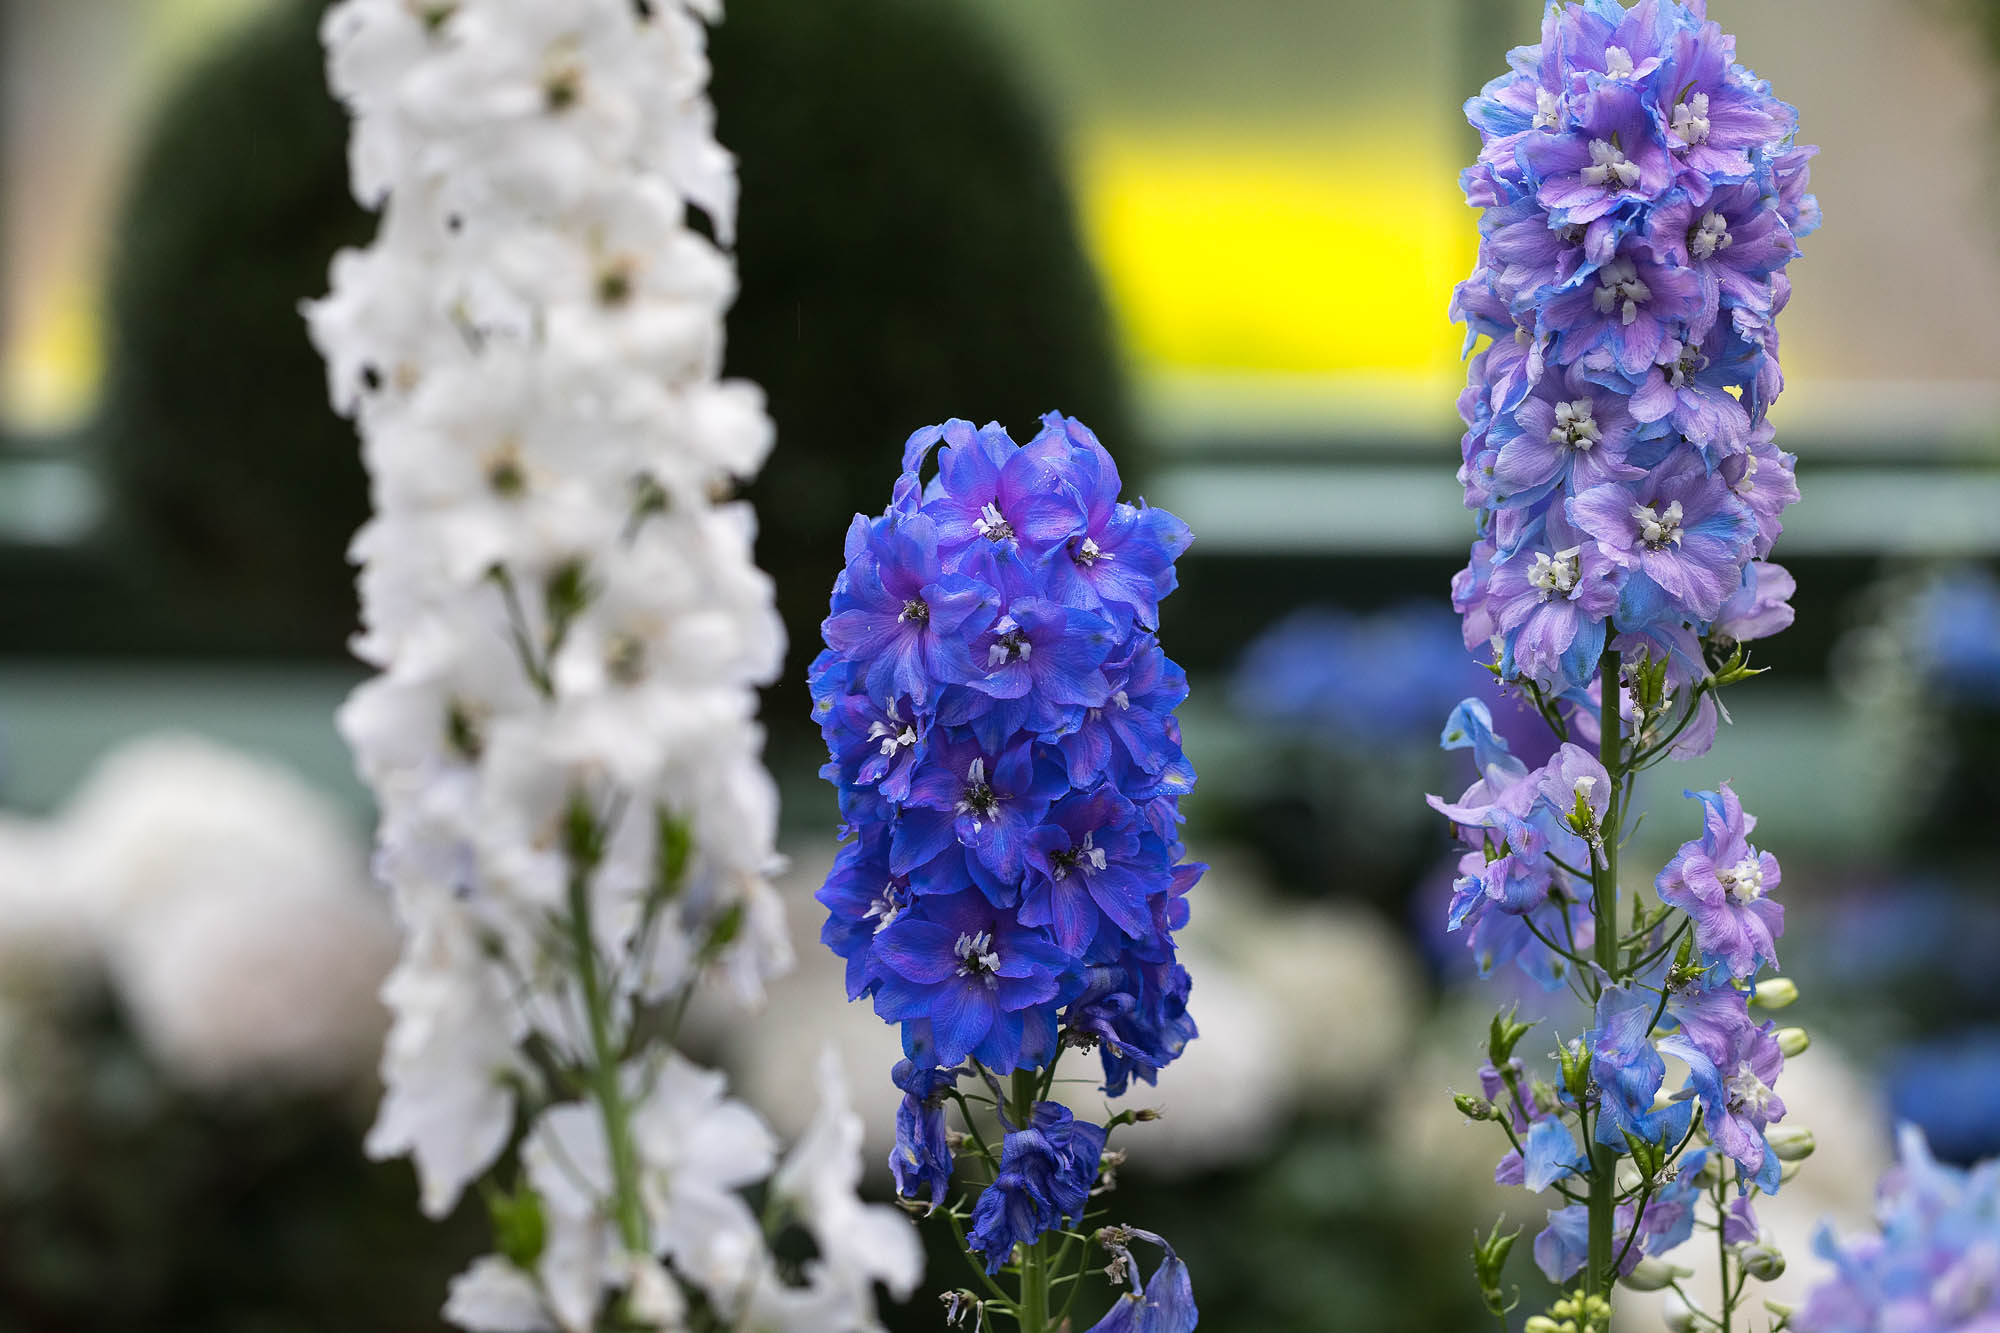 Image of delphiniums taken inside Niagara Parks greenhouse